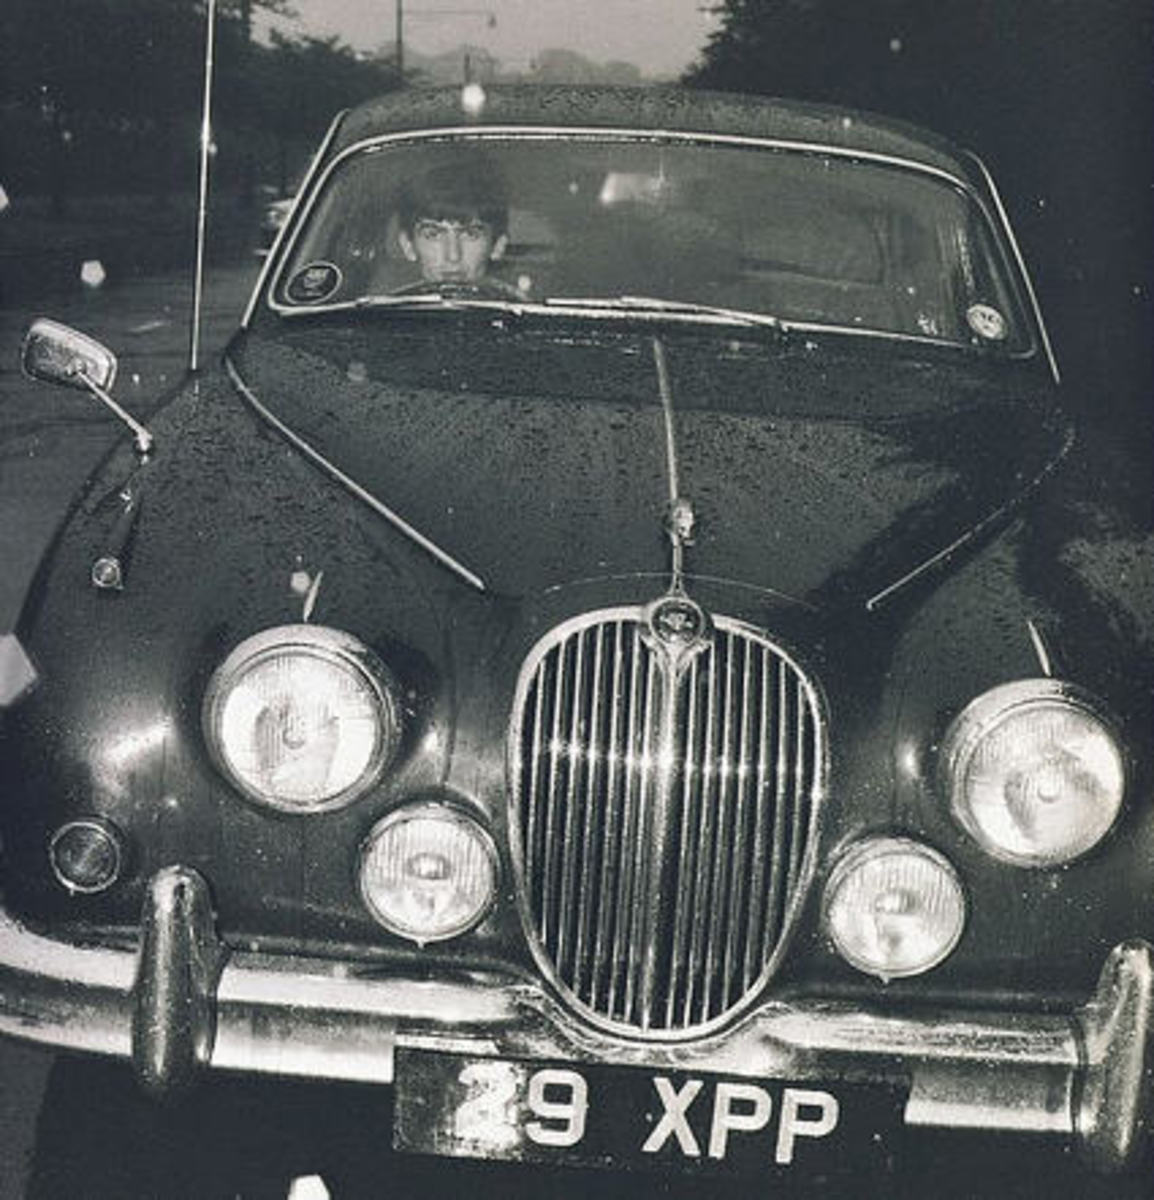 Harrison's 64 Jaguar